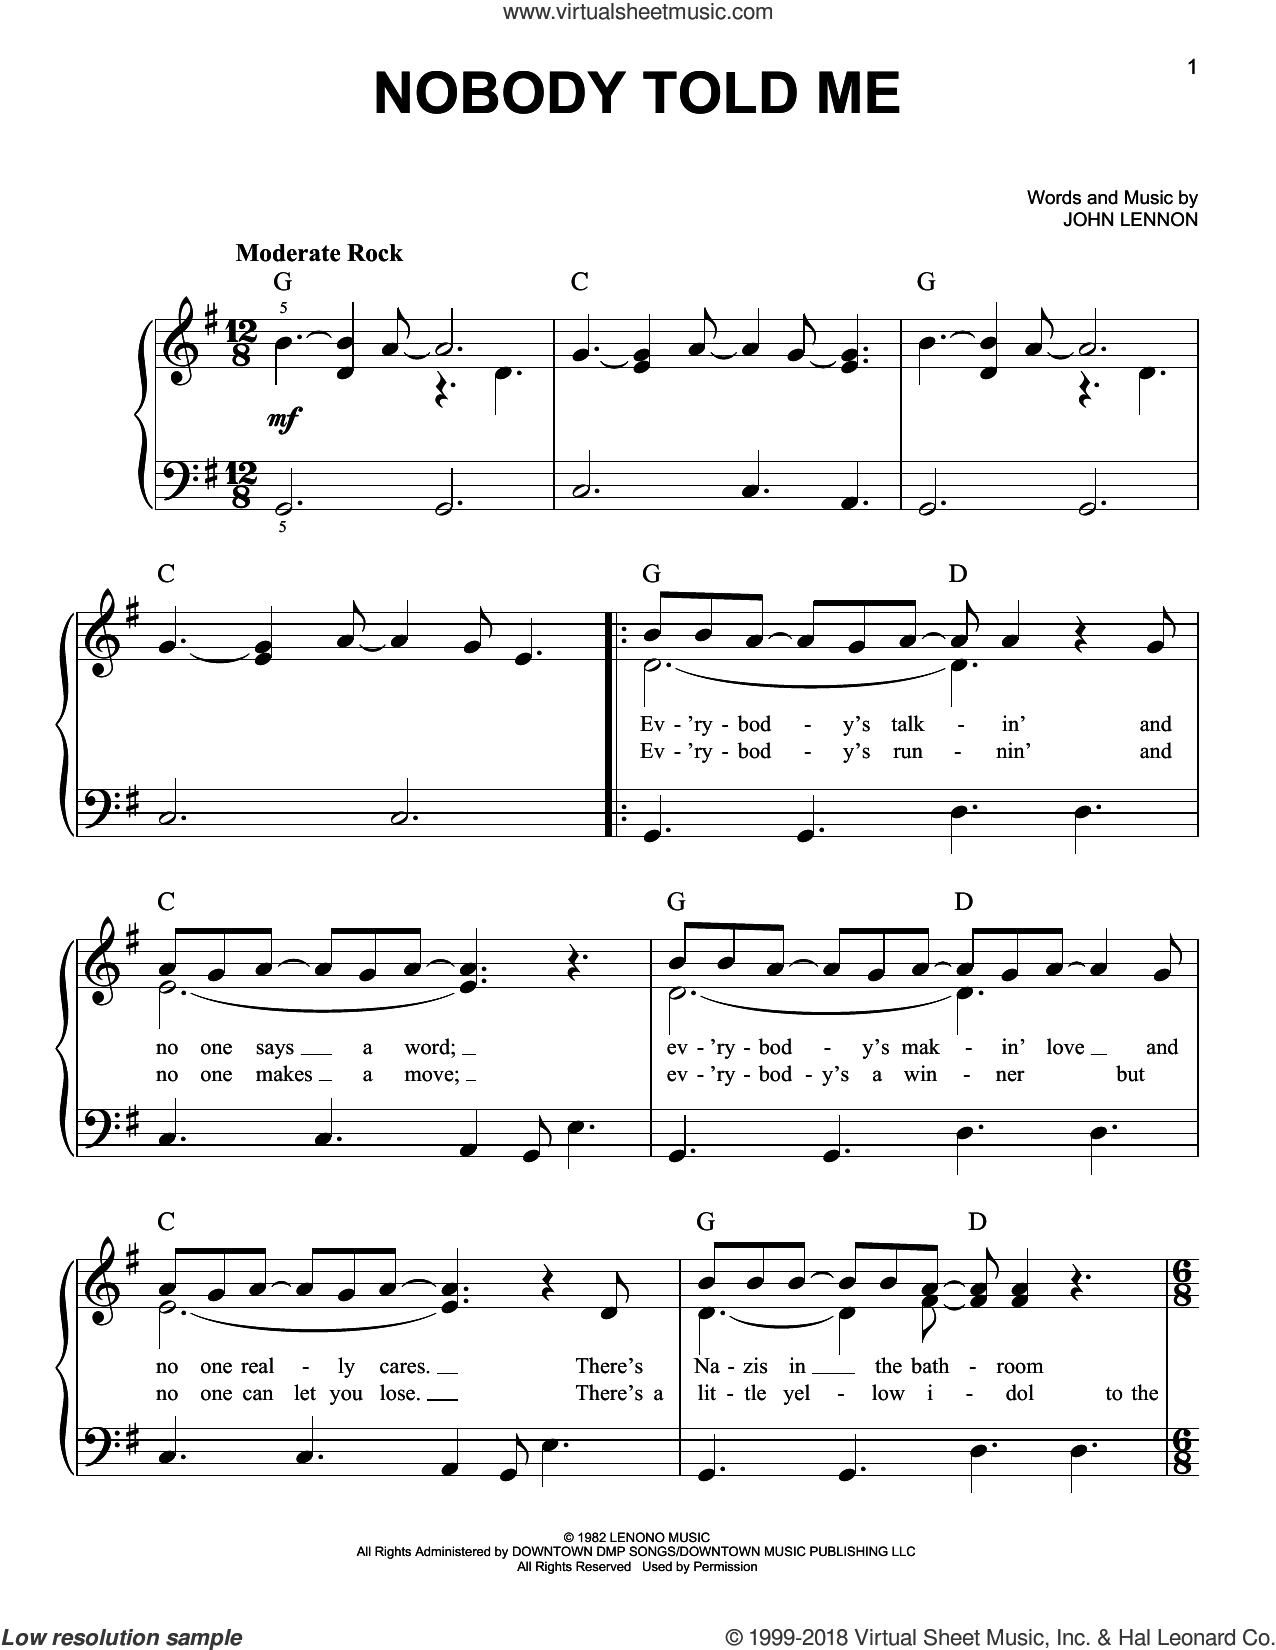 Nobody Told Me sheet music for piano solo by John Lennon, easy skill level